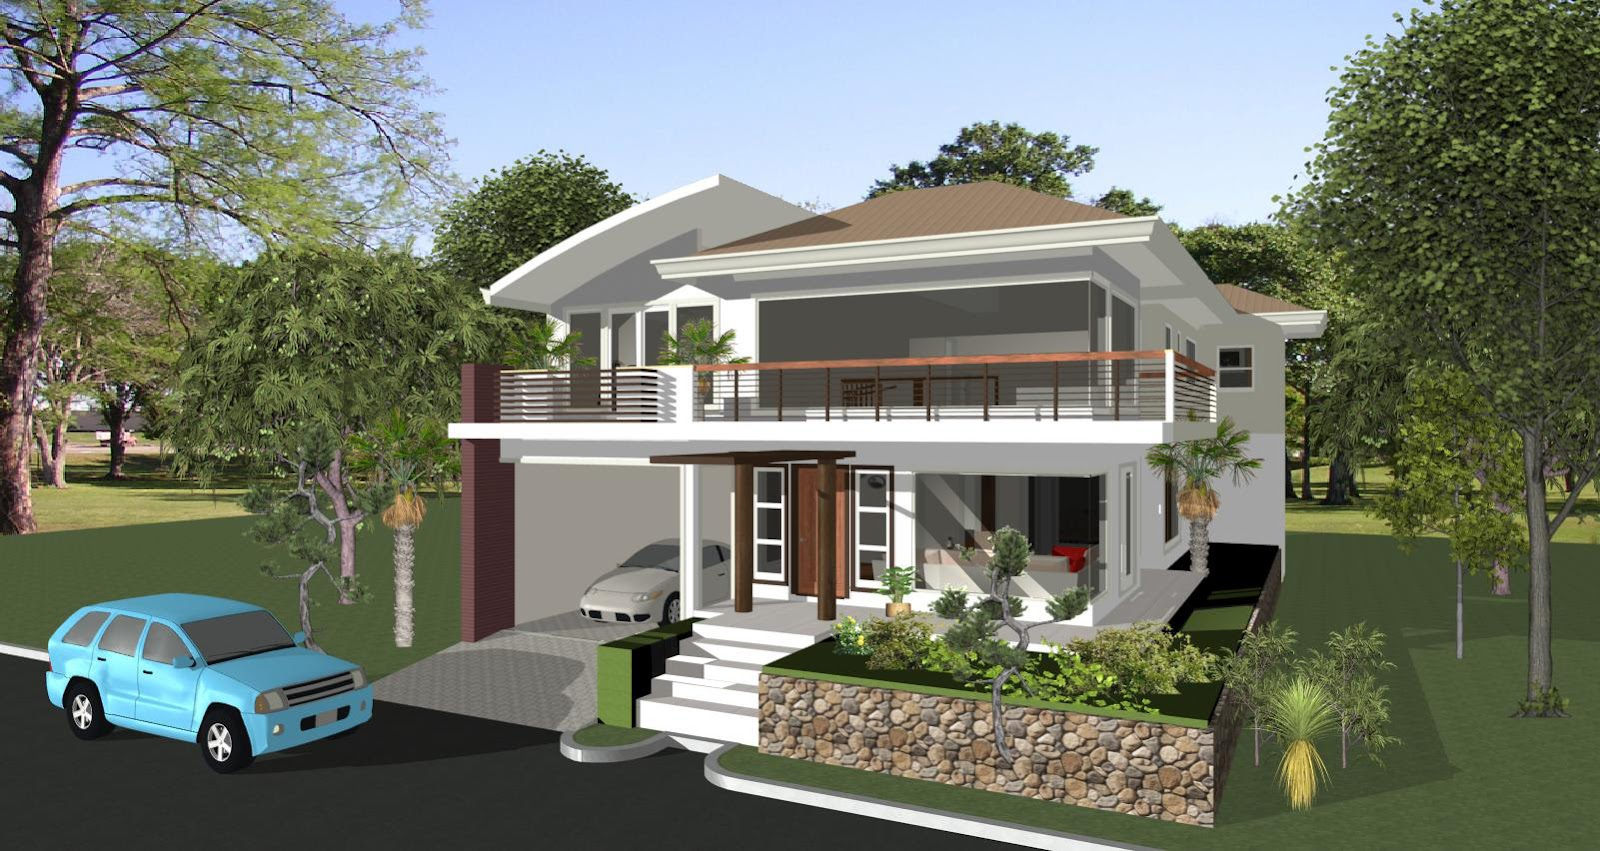 House designs in the philippines in iloilo by erecre group for House plan design philippines